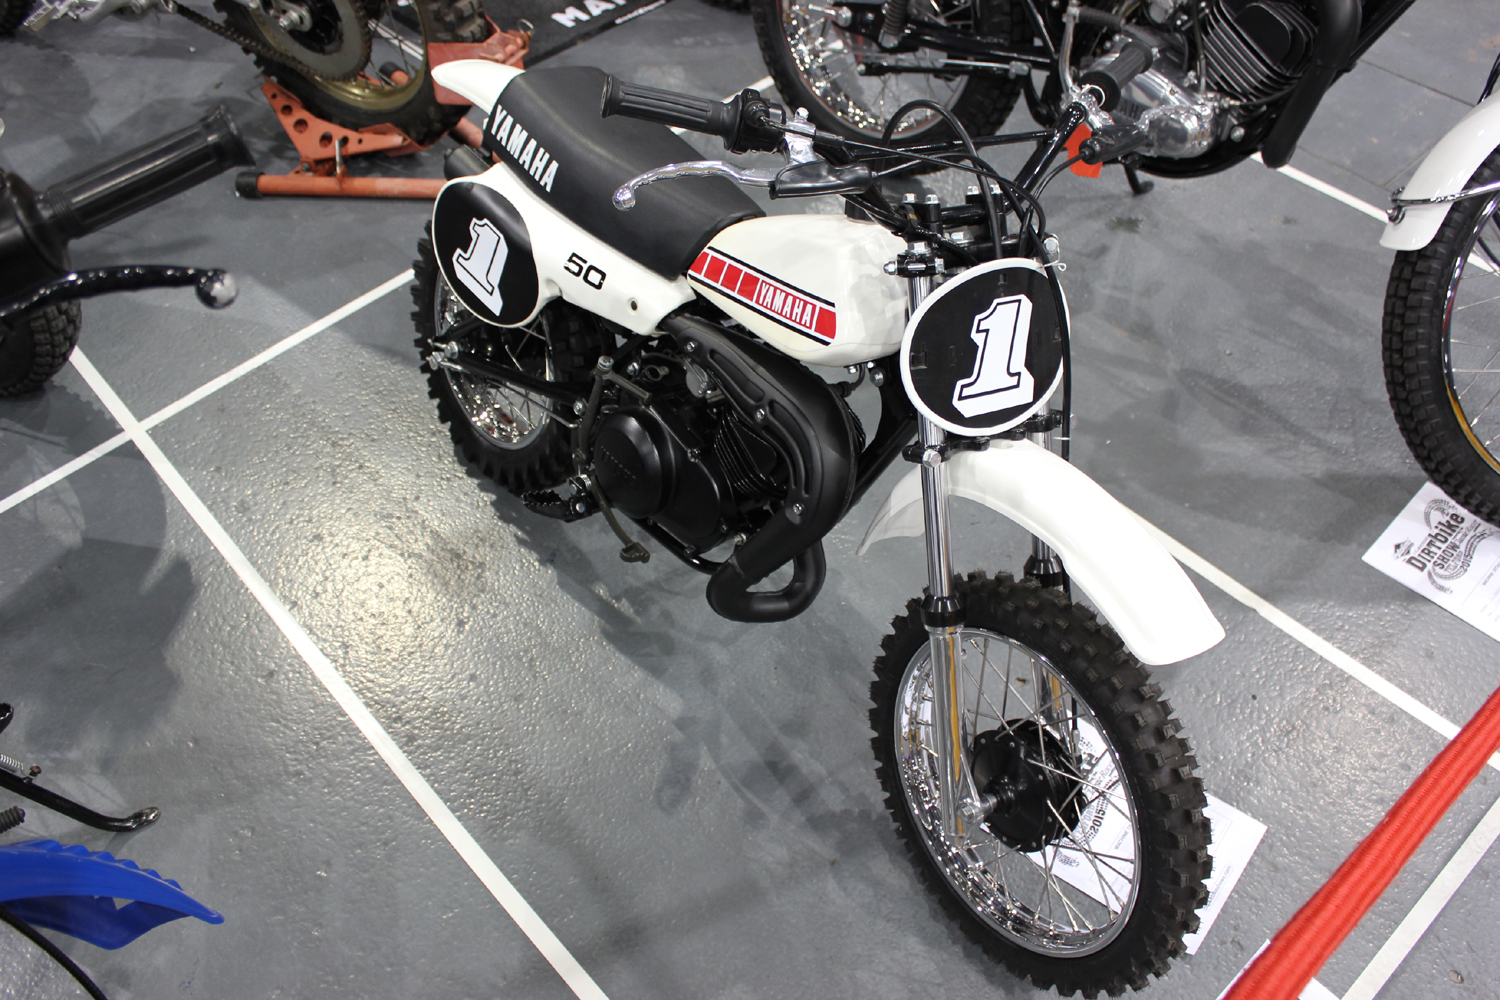 classicdirtbikerider.com-photo by Mr J-2015 Telford classic dirt bike show-CLASSIC YAMAHA YZ50